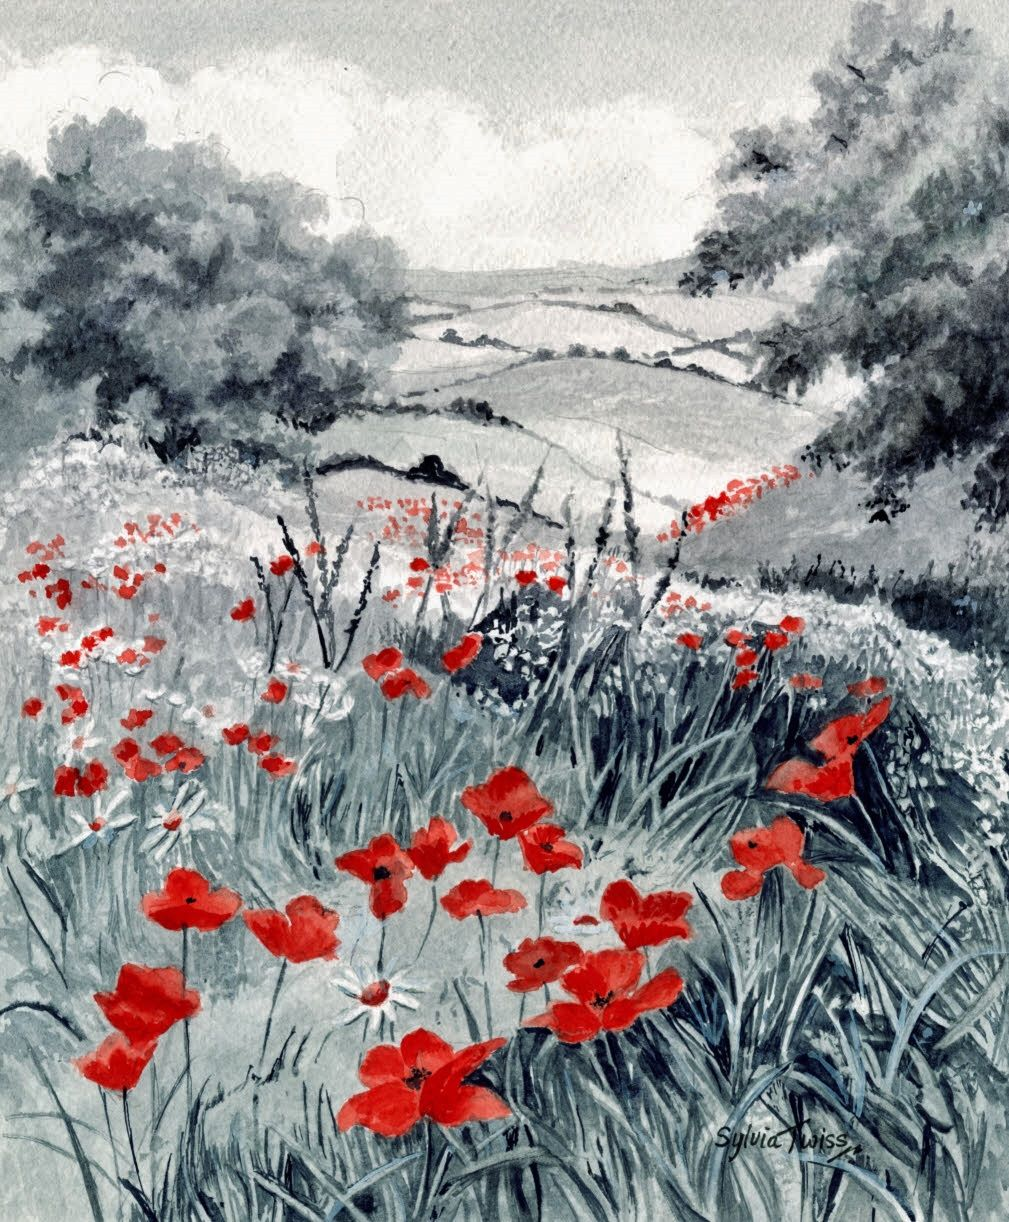 Field of Poppies - Experiment in monochrome with dash of extra colour. A  watercolour by Sylvia Twiss